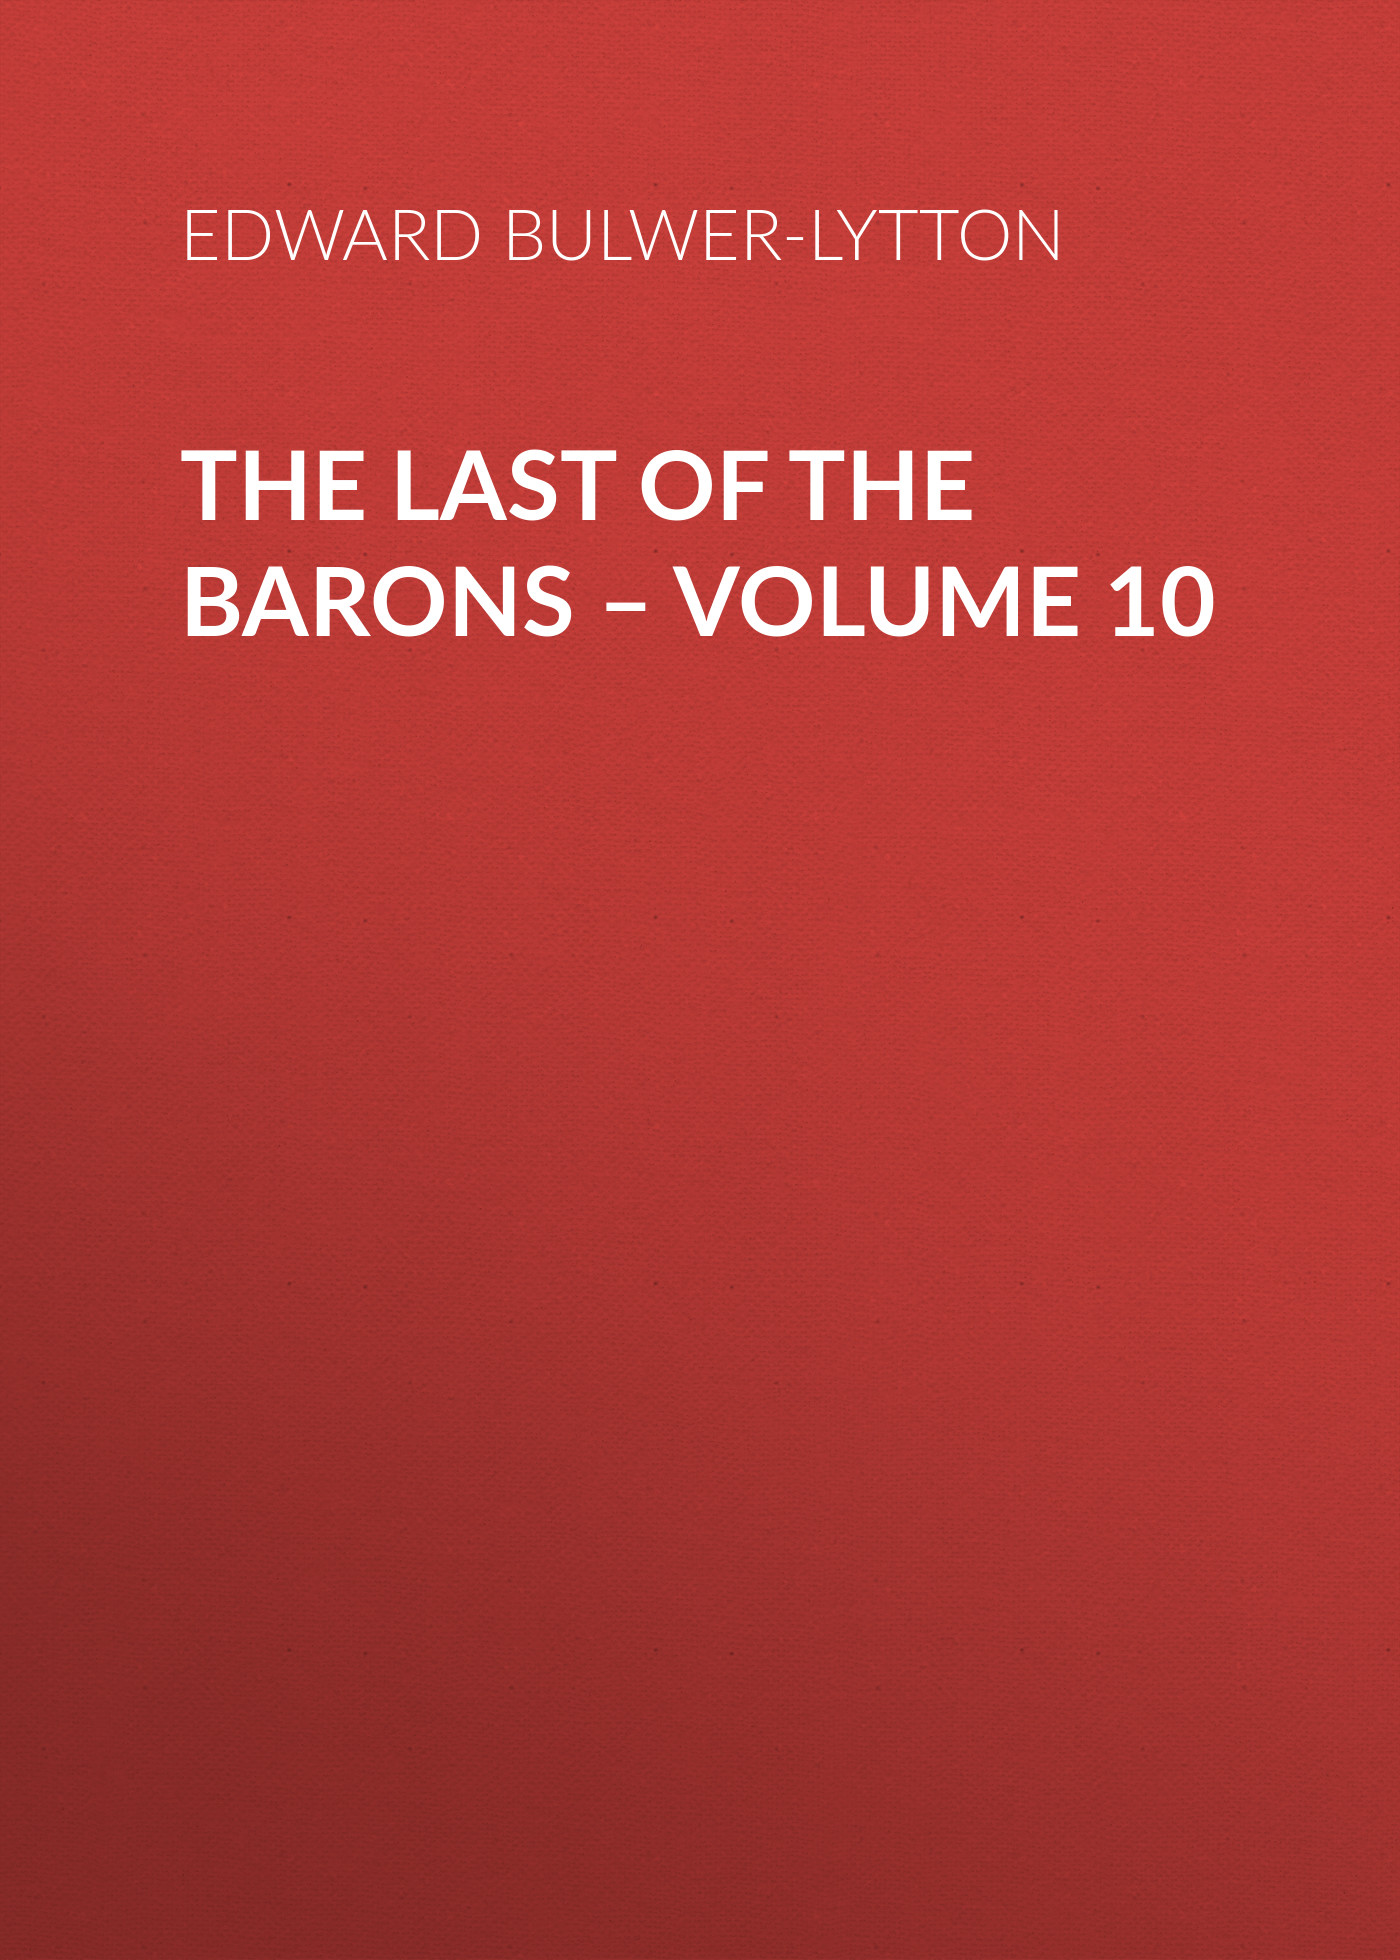 Эдвард Бульвер-Литтон The Last of the Barons – Volume 10 эдвард бульвер литтон harold the last of the saxon kings volume 10